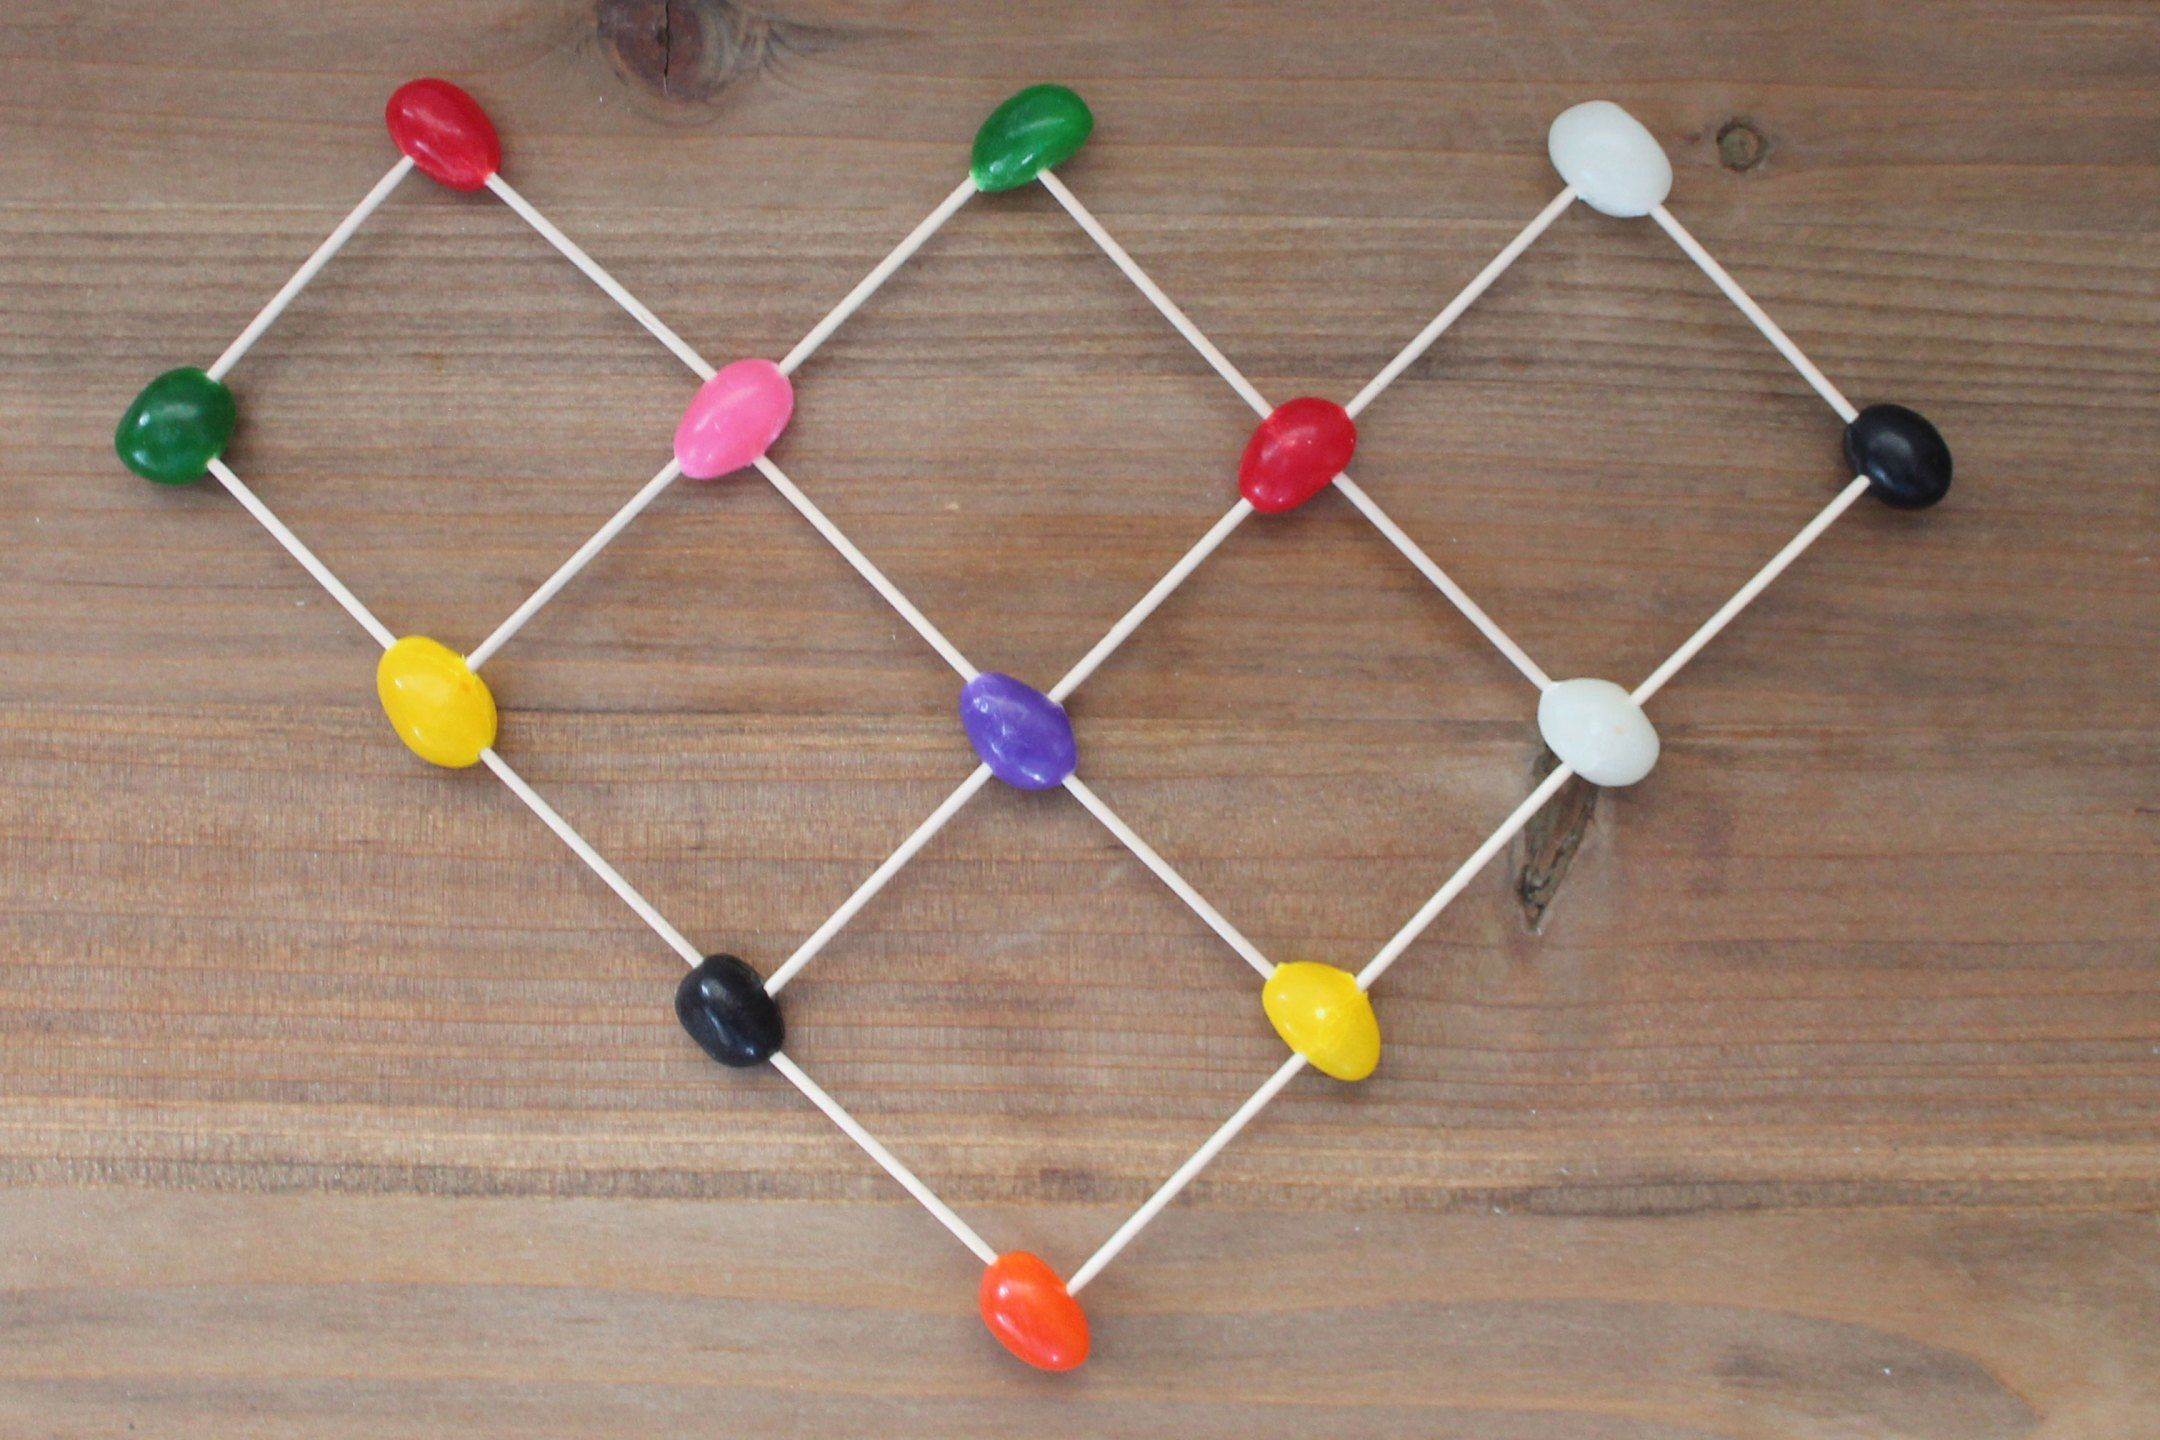 An easy STEM Activity that can be done as independent play, or as a team building challenge for kids. Create the tallest jelly bean tower, build an intricate structure, or even work on learning letters and numbers. Perfect 'Minute it to Win It' game for classroom fun, scouts, or vacation bible school. #stem #stemgames #stemactivties #stemforkids #activitiesforkids #stemlearning #teaching #classroomfun